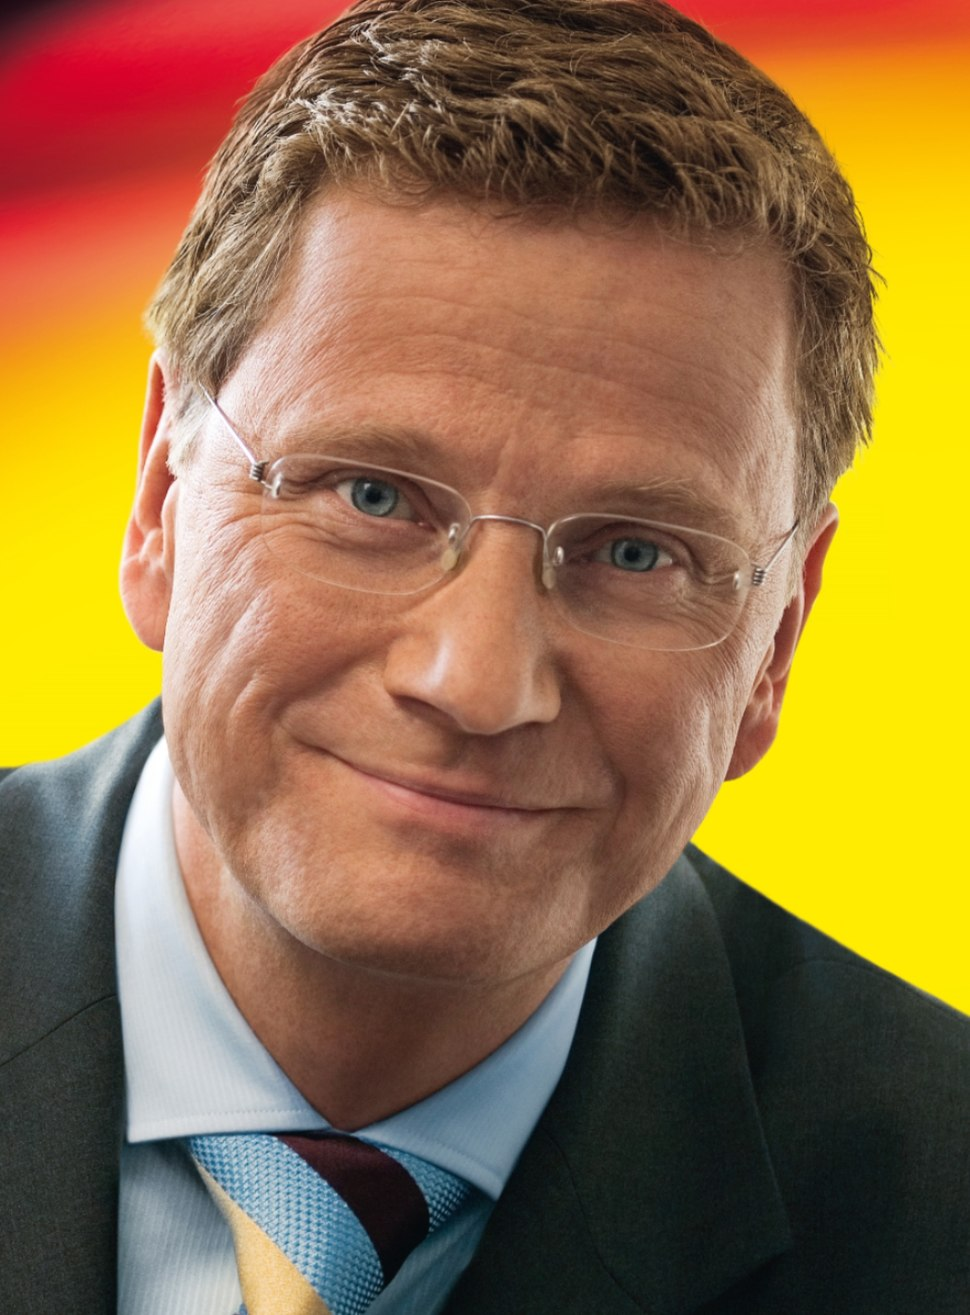 Guido Westerwelle 2007 (cropped)